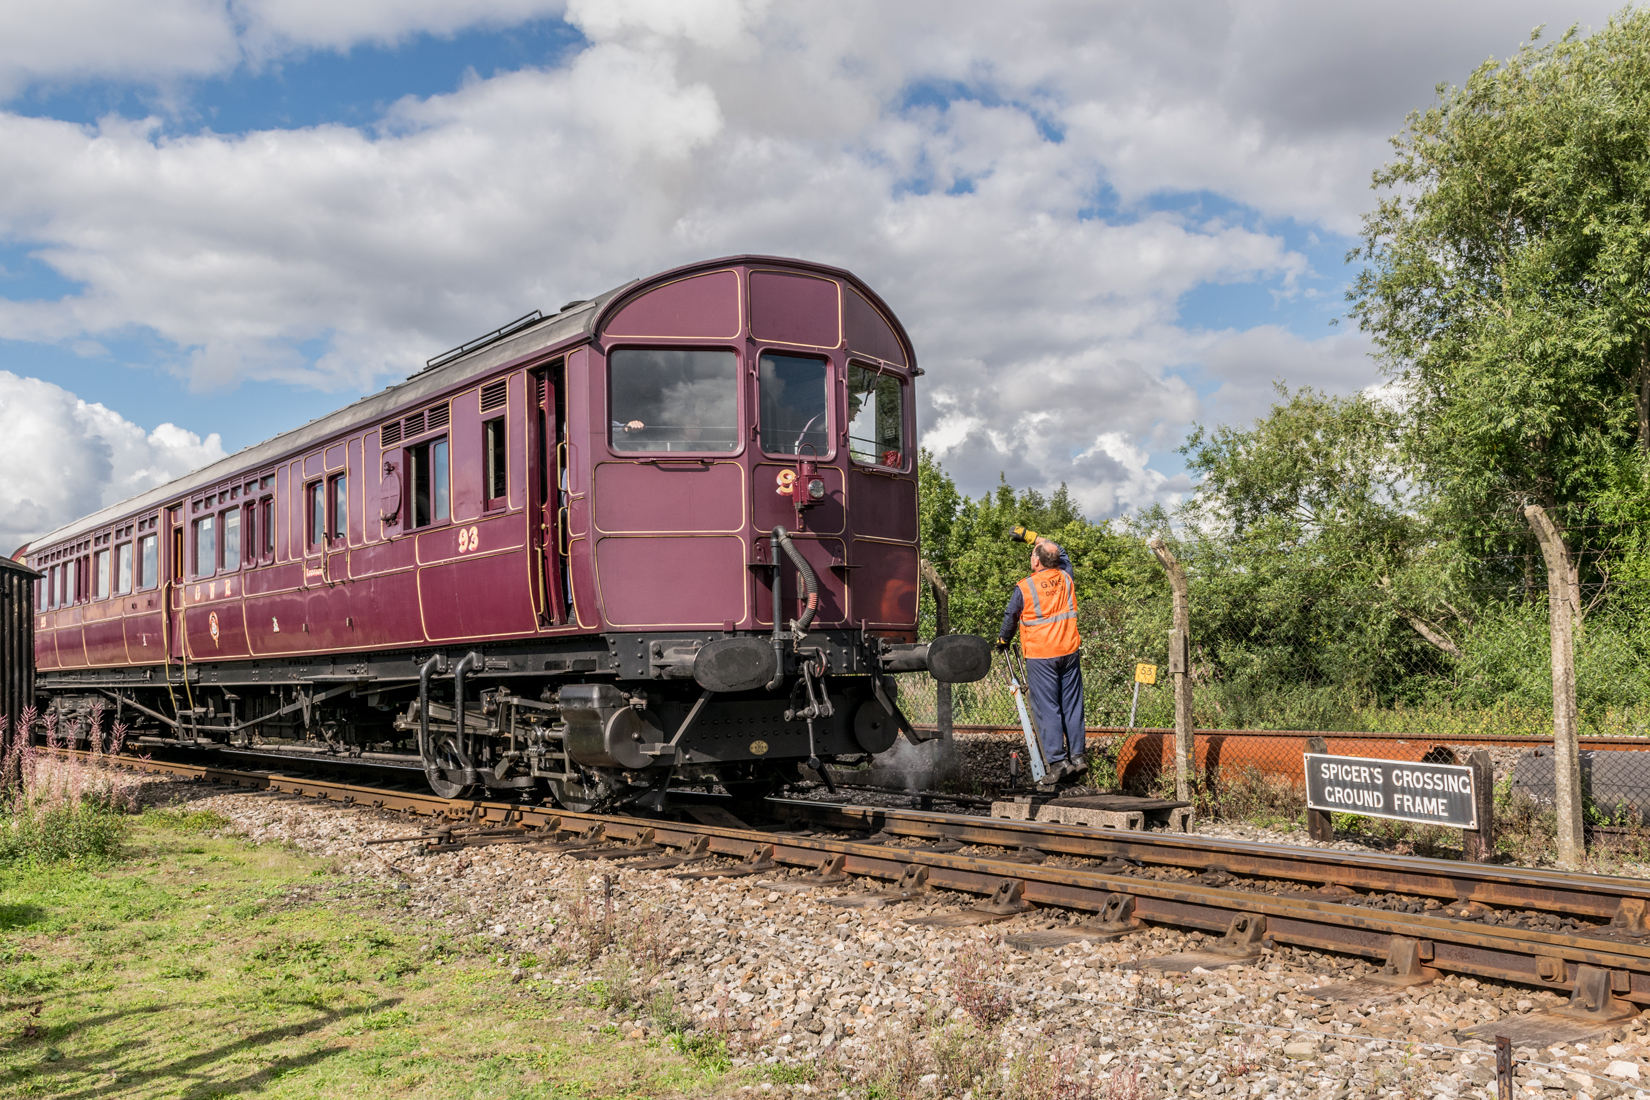 Steam Railmotor No. 93 at Spicers Crossing